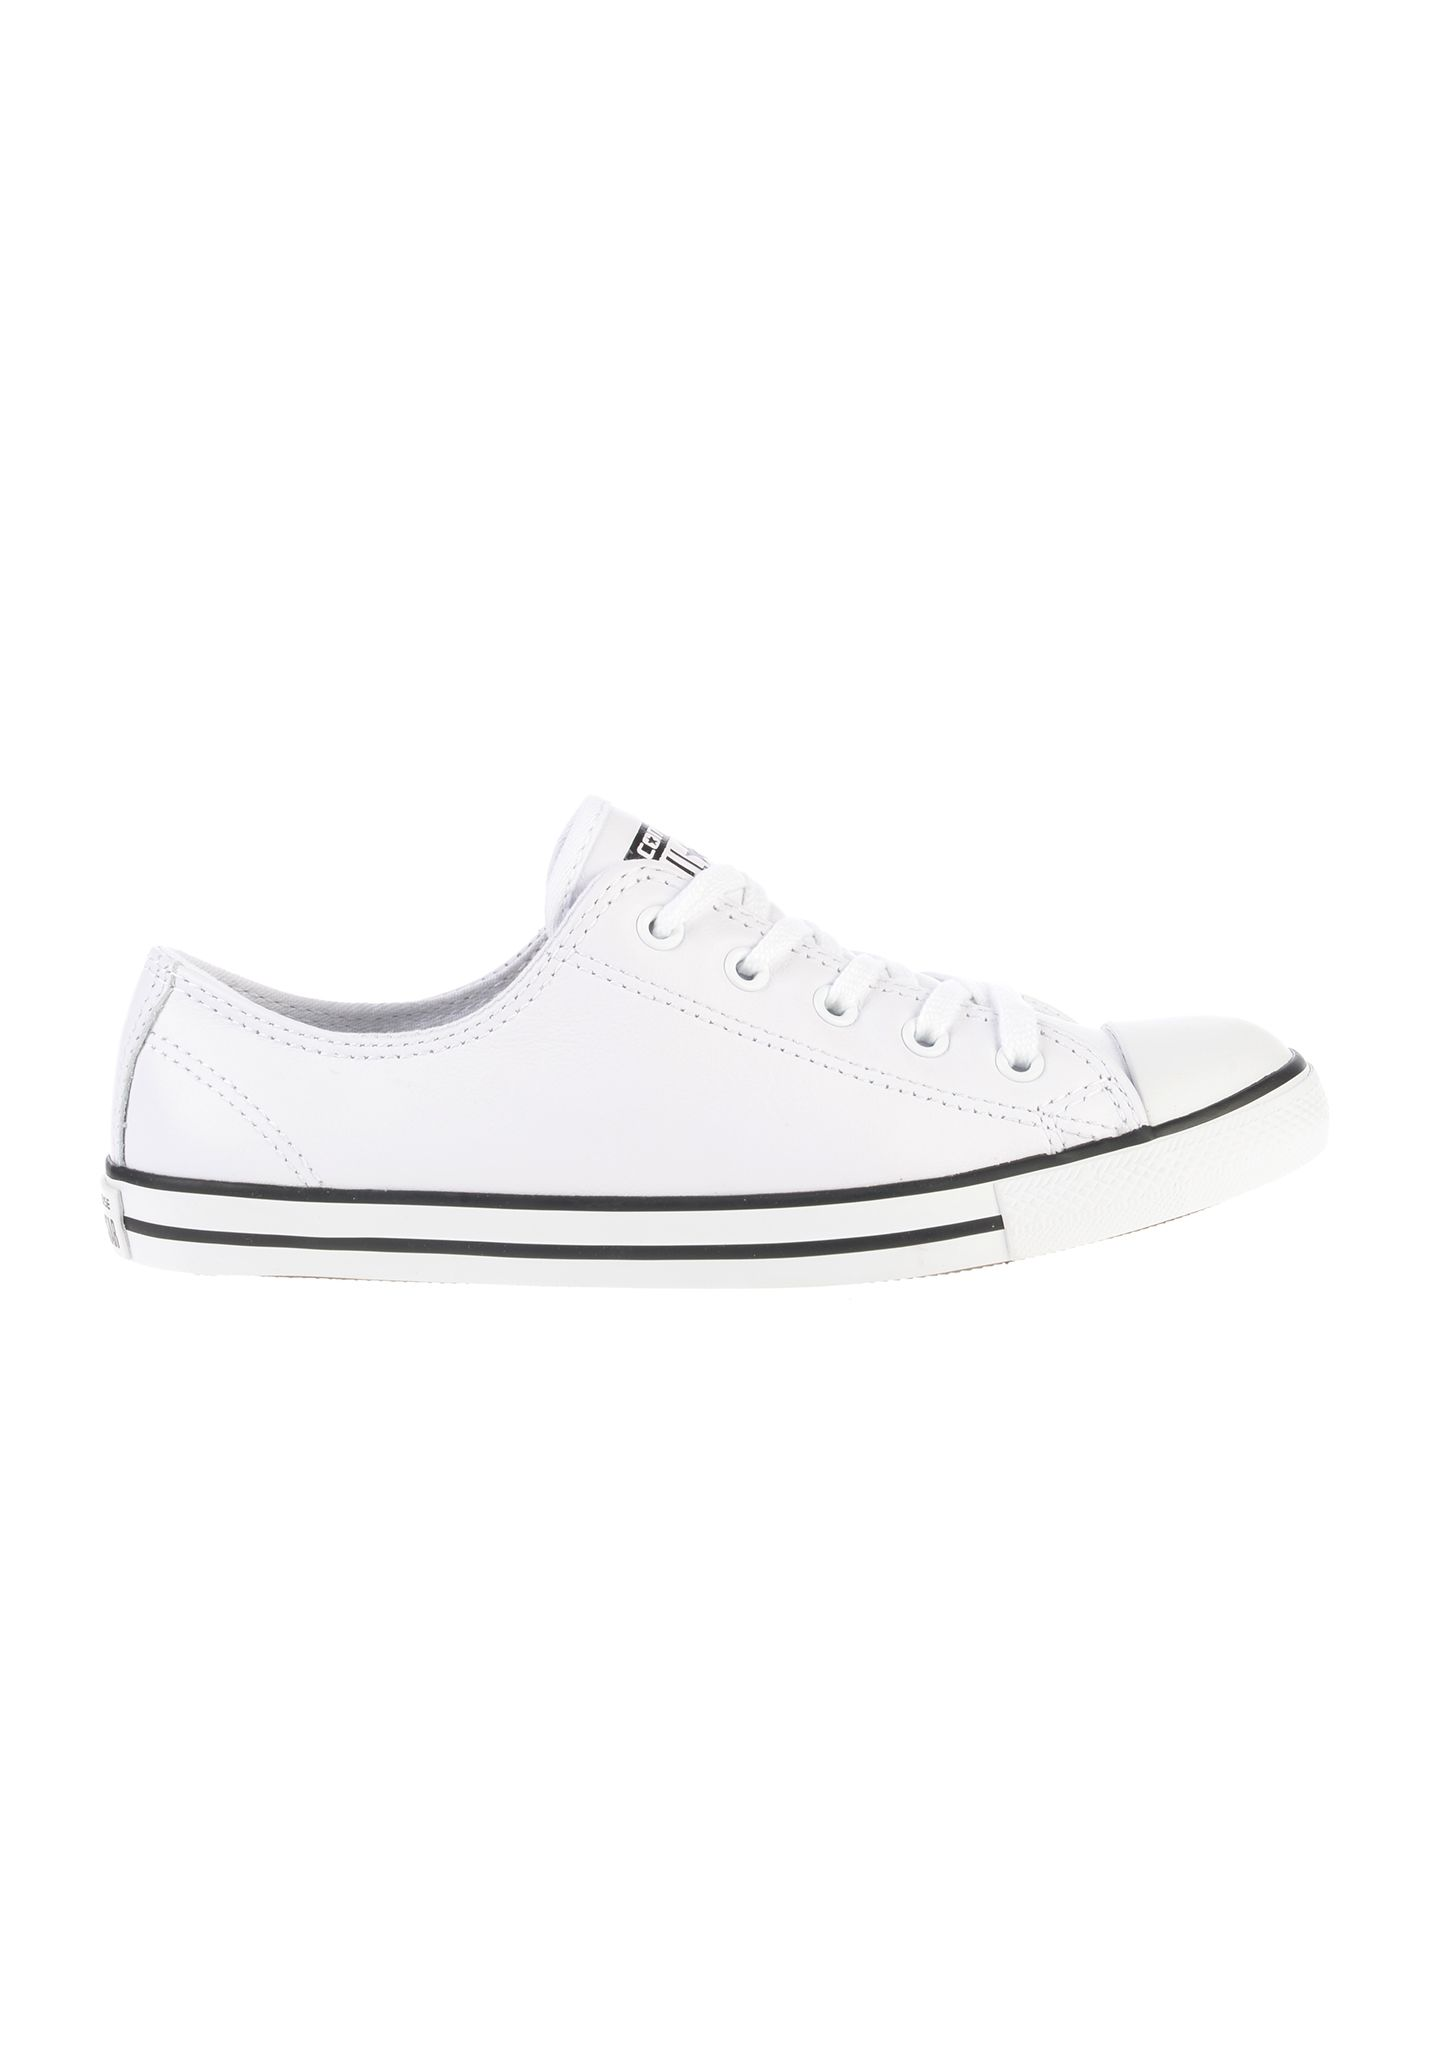 3180a98c704 Converse Chuck Taylor All Star Dainty Ox - Sneakers voor Dames - Wit -  Planet Sports